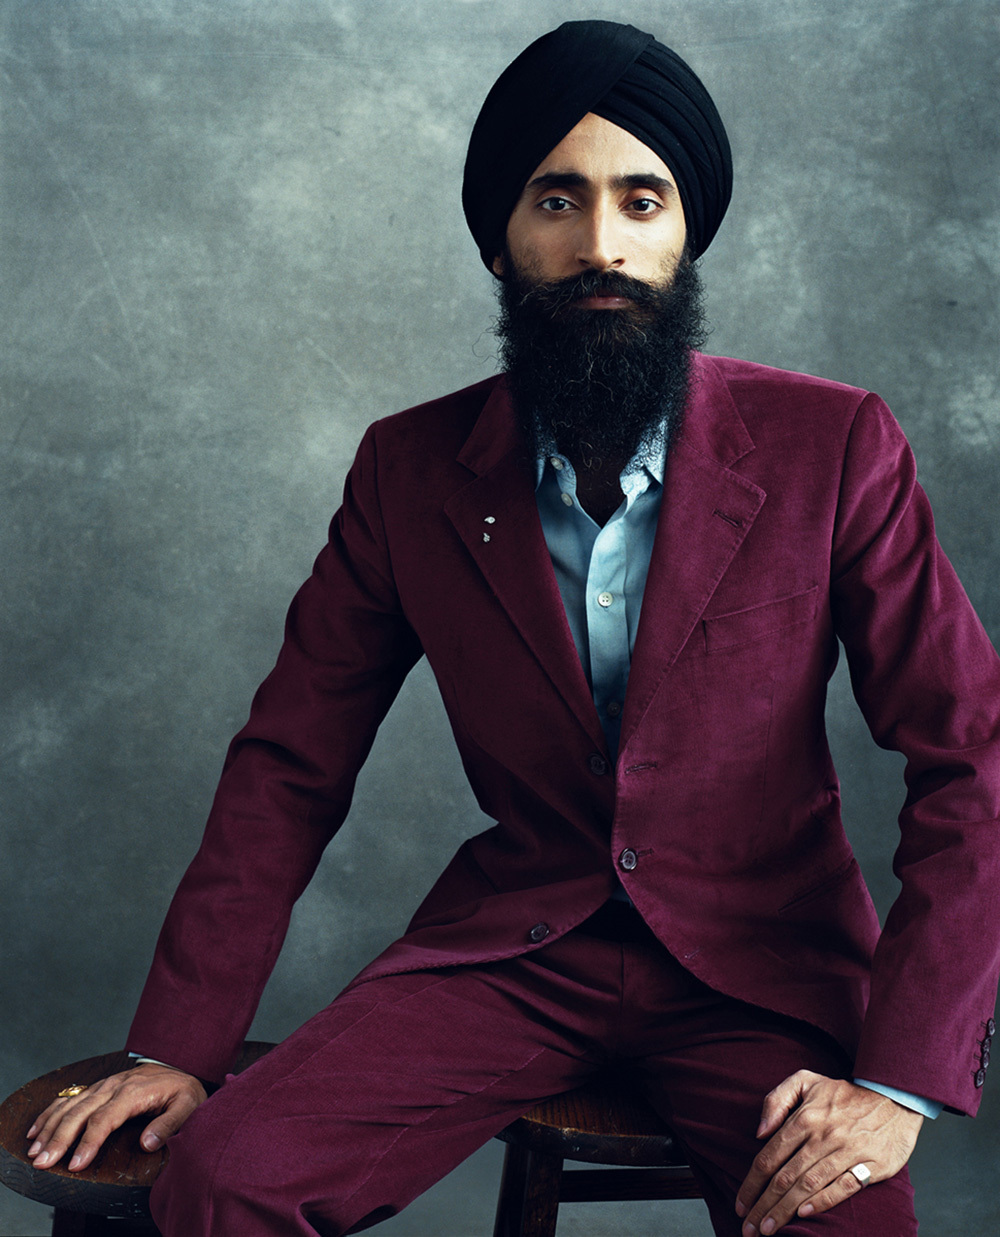 Canadian sikh man photoshopped celebrity